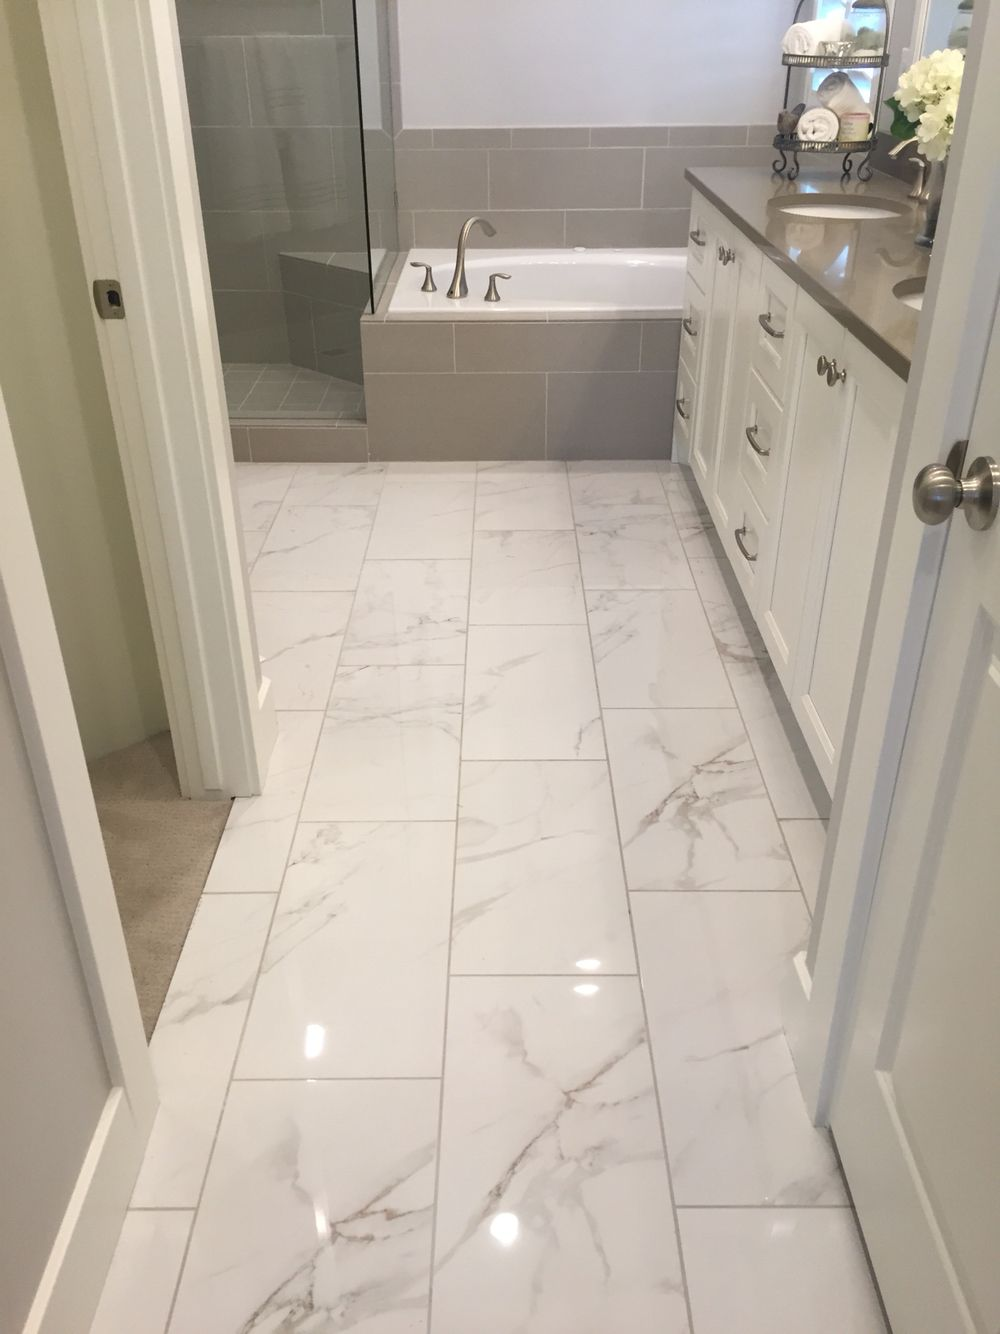 tile floor bathroom ideas i like shiny tile bathrooms remodel marble tile bathroom bathroom remodel master 7105